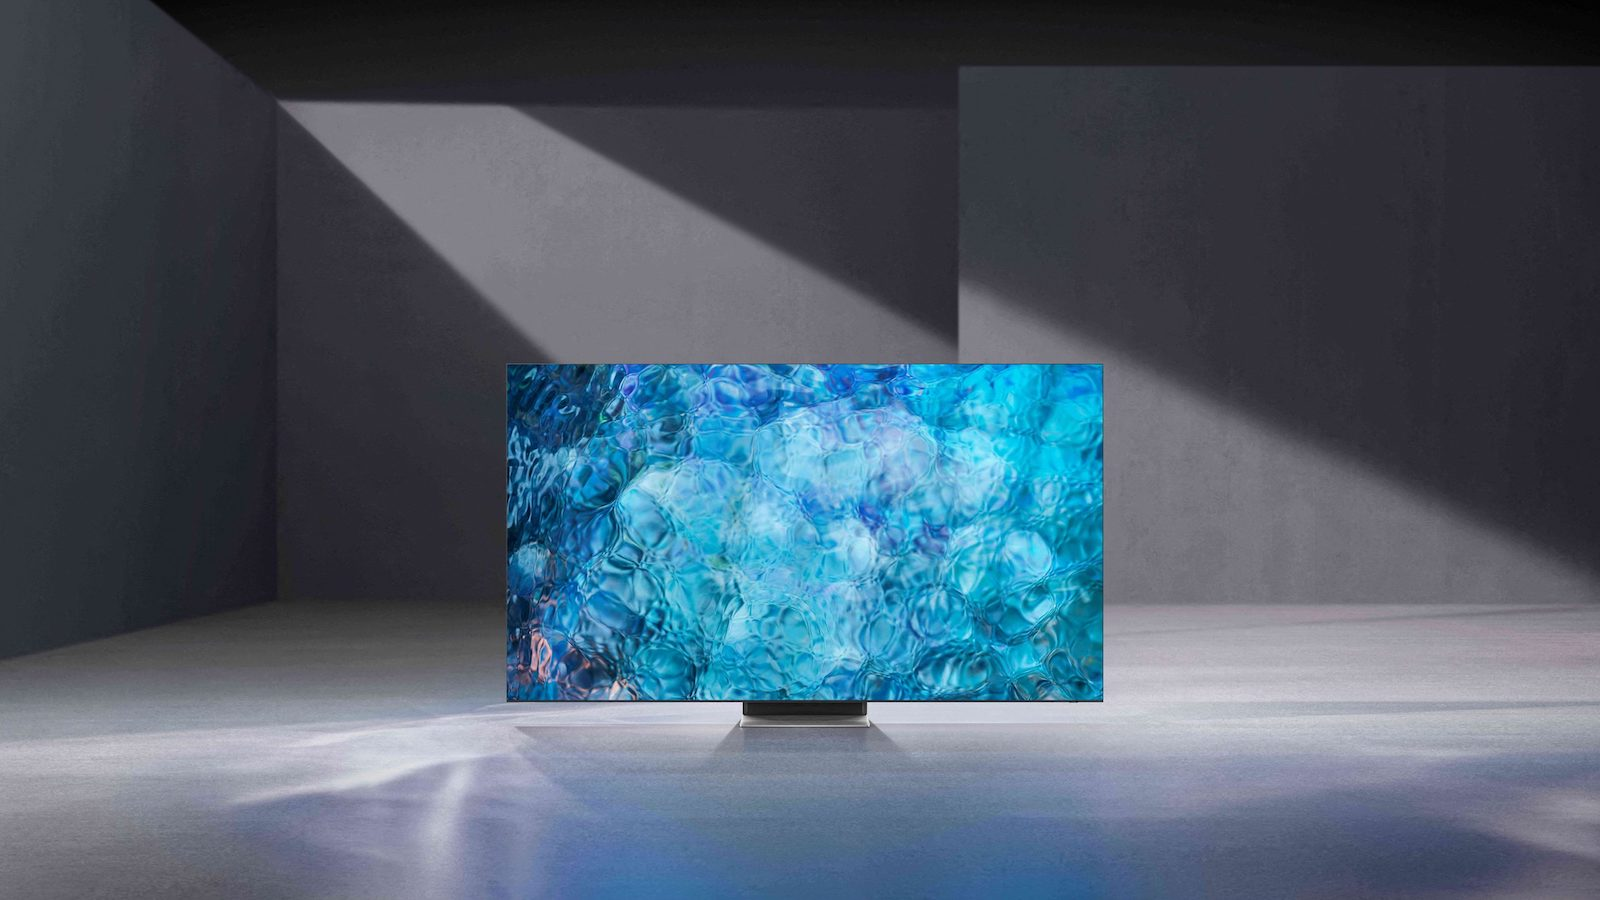 Samsung 2021 Neo QLED accessible TV lineup uses a new Quantum Mini LED light source